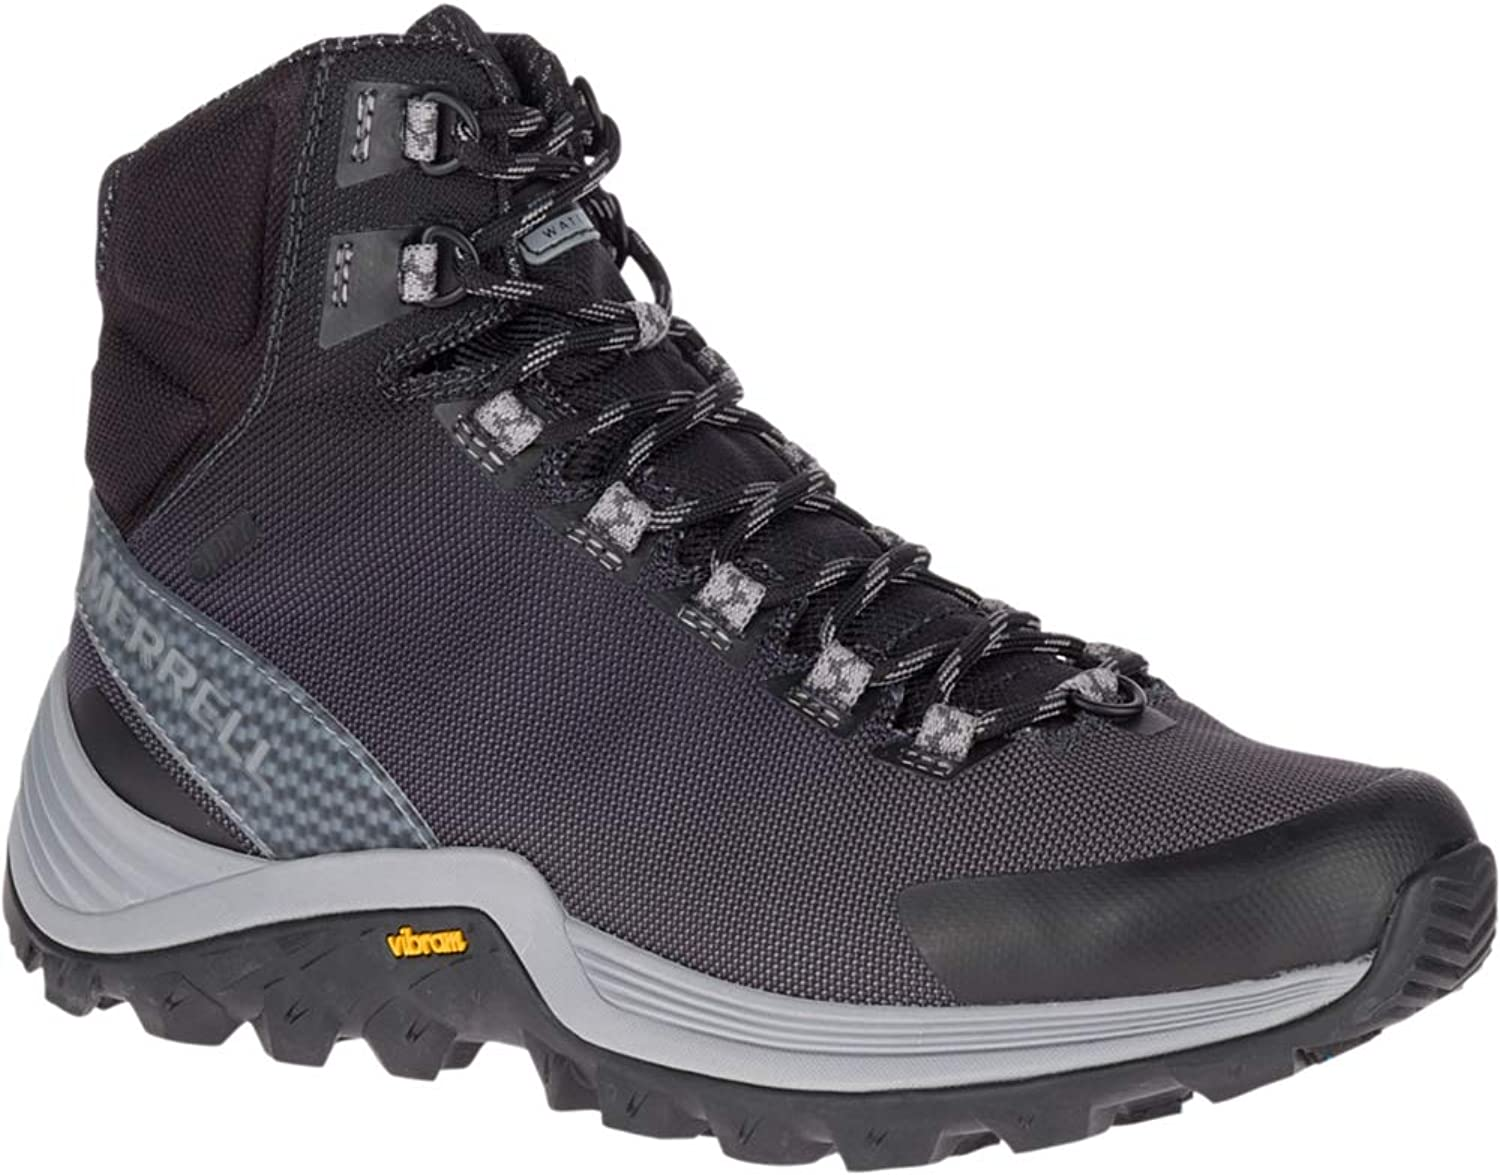 Merrell Thermo Cross Mid Waterproof